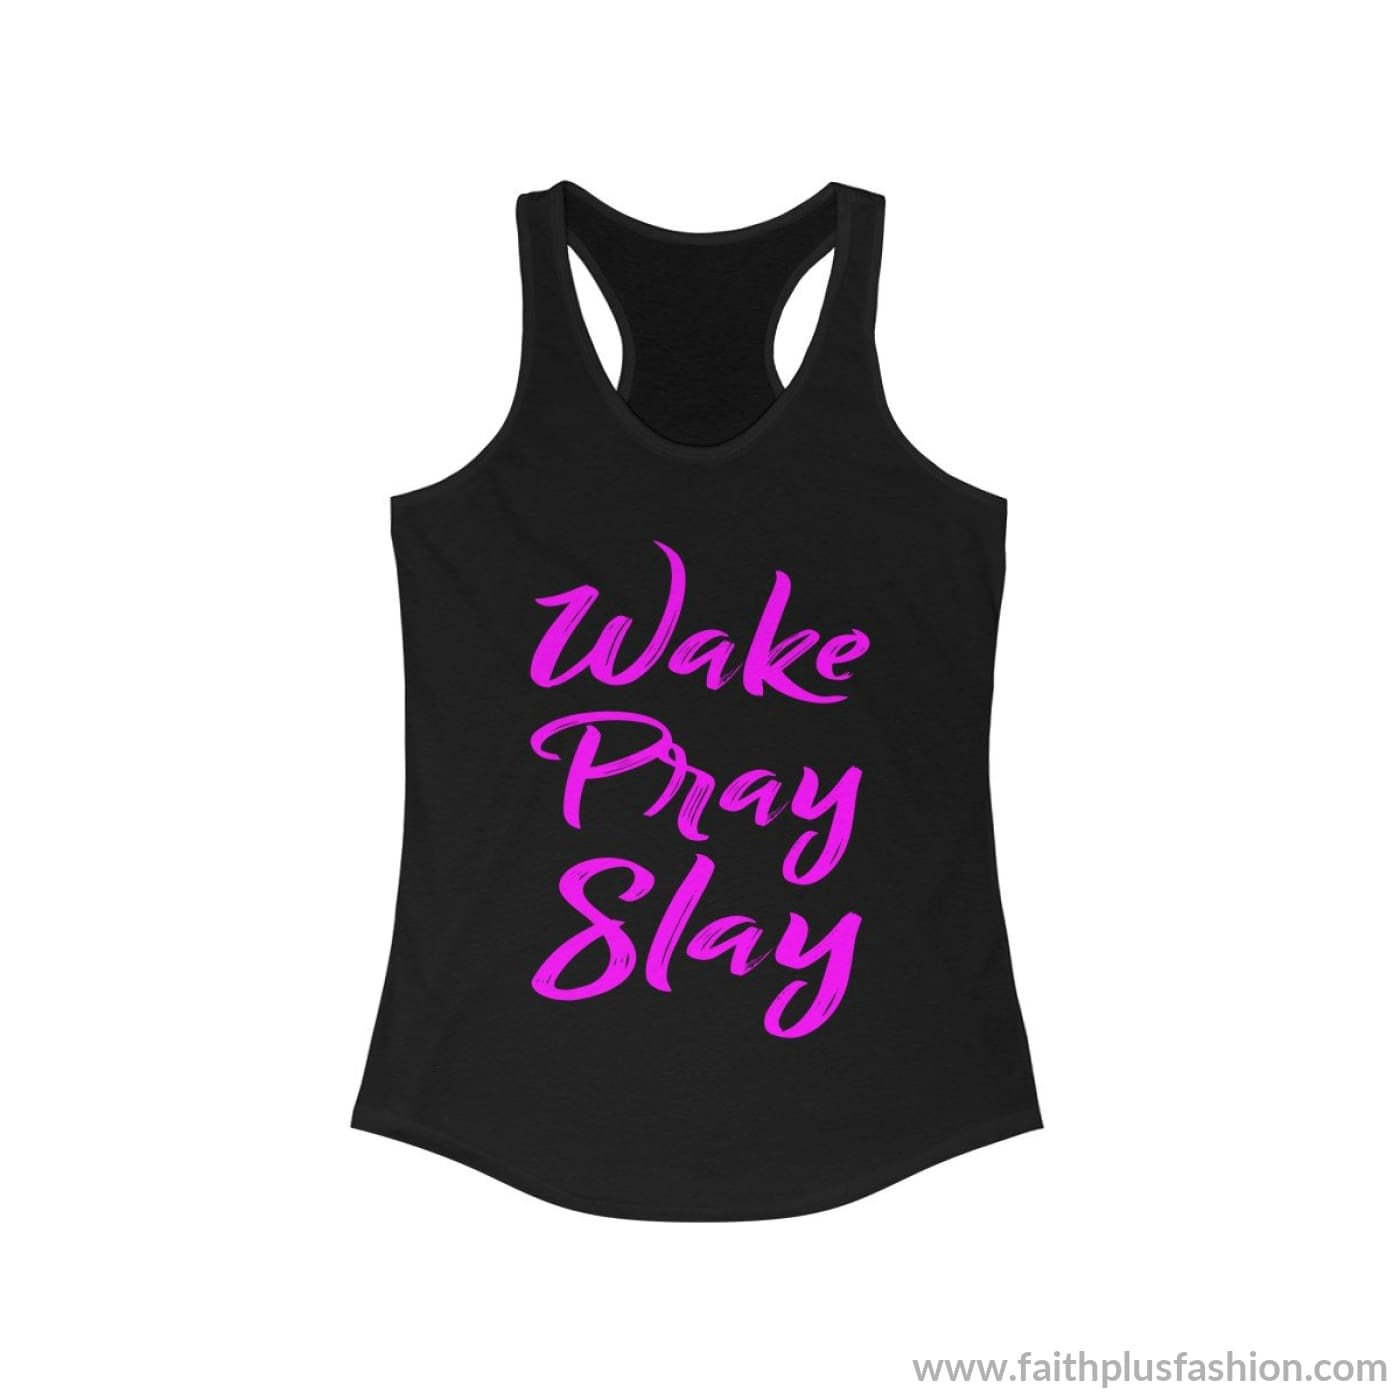 Wake Pray Slay Womens Christian Tank Top - Solid Black / Xs - Tank Top